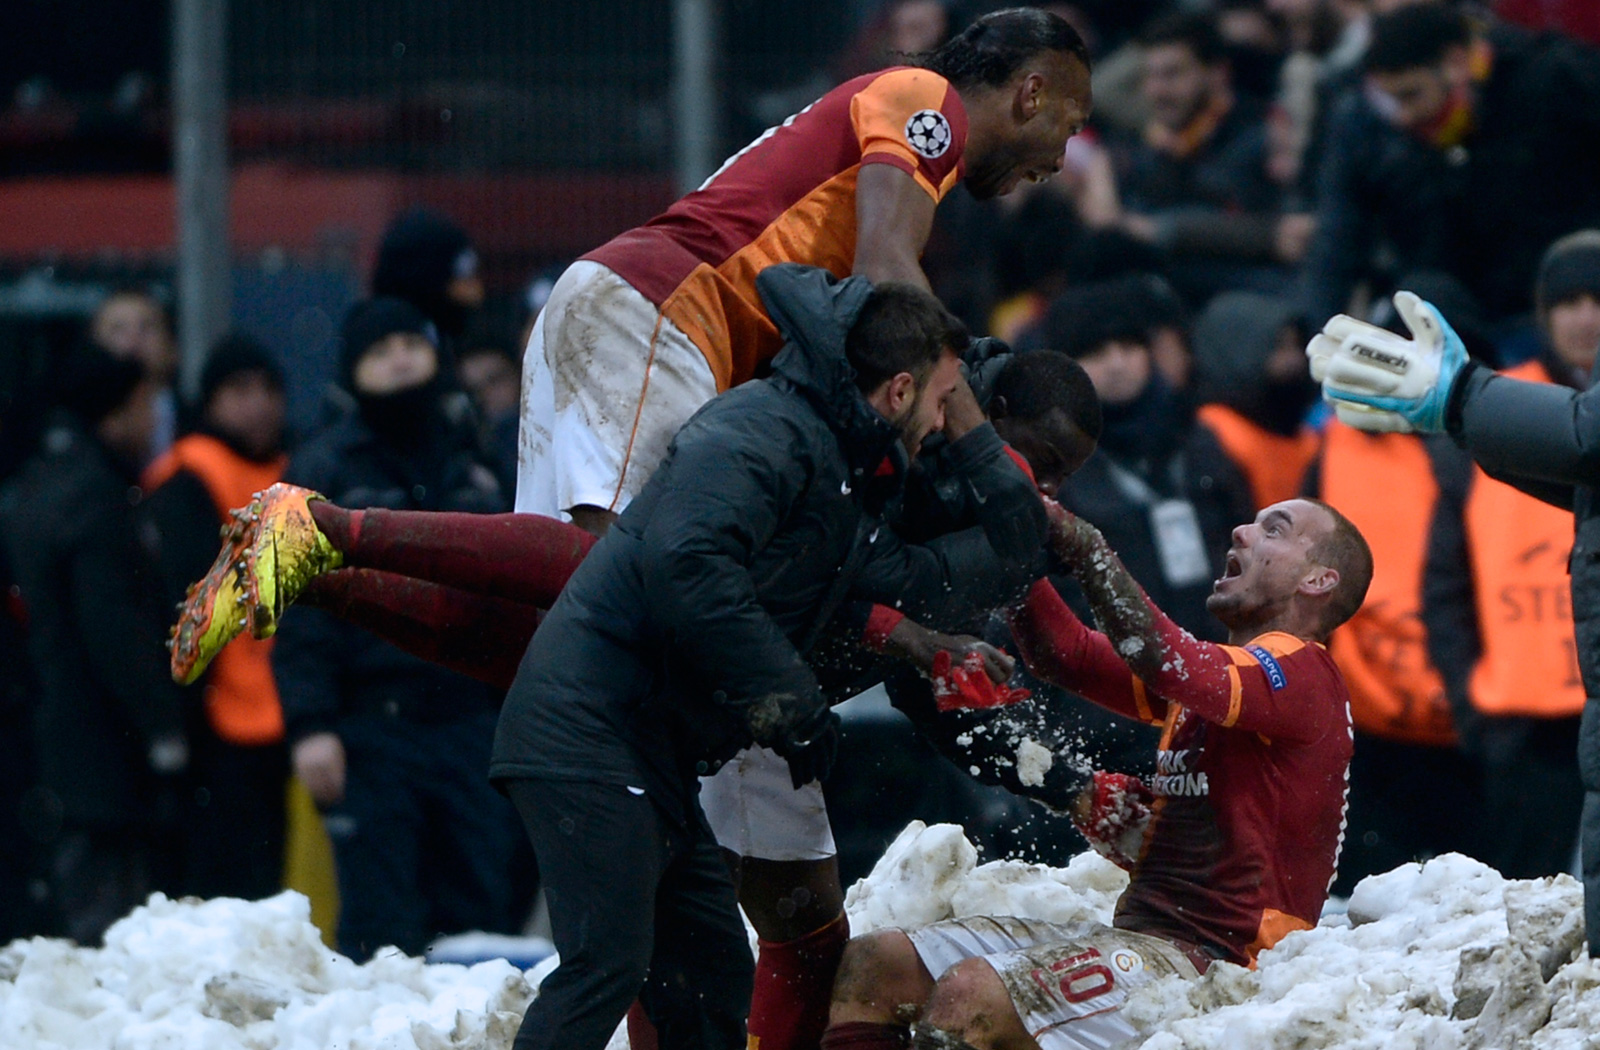 Galatasaray's Didier Drogba and Wesley Sneijder celebrate in the Champions League clash vs. Juventus in the snow in Istanbul in December 2013.